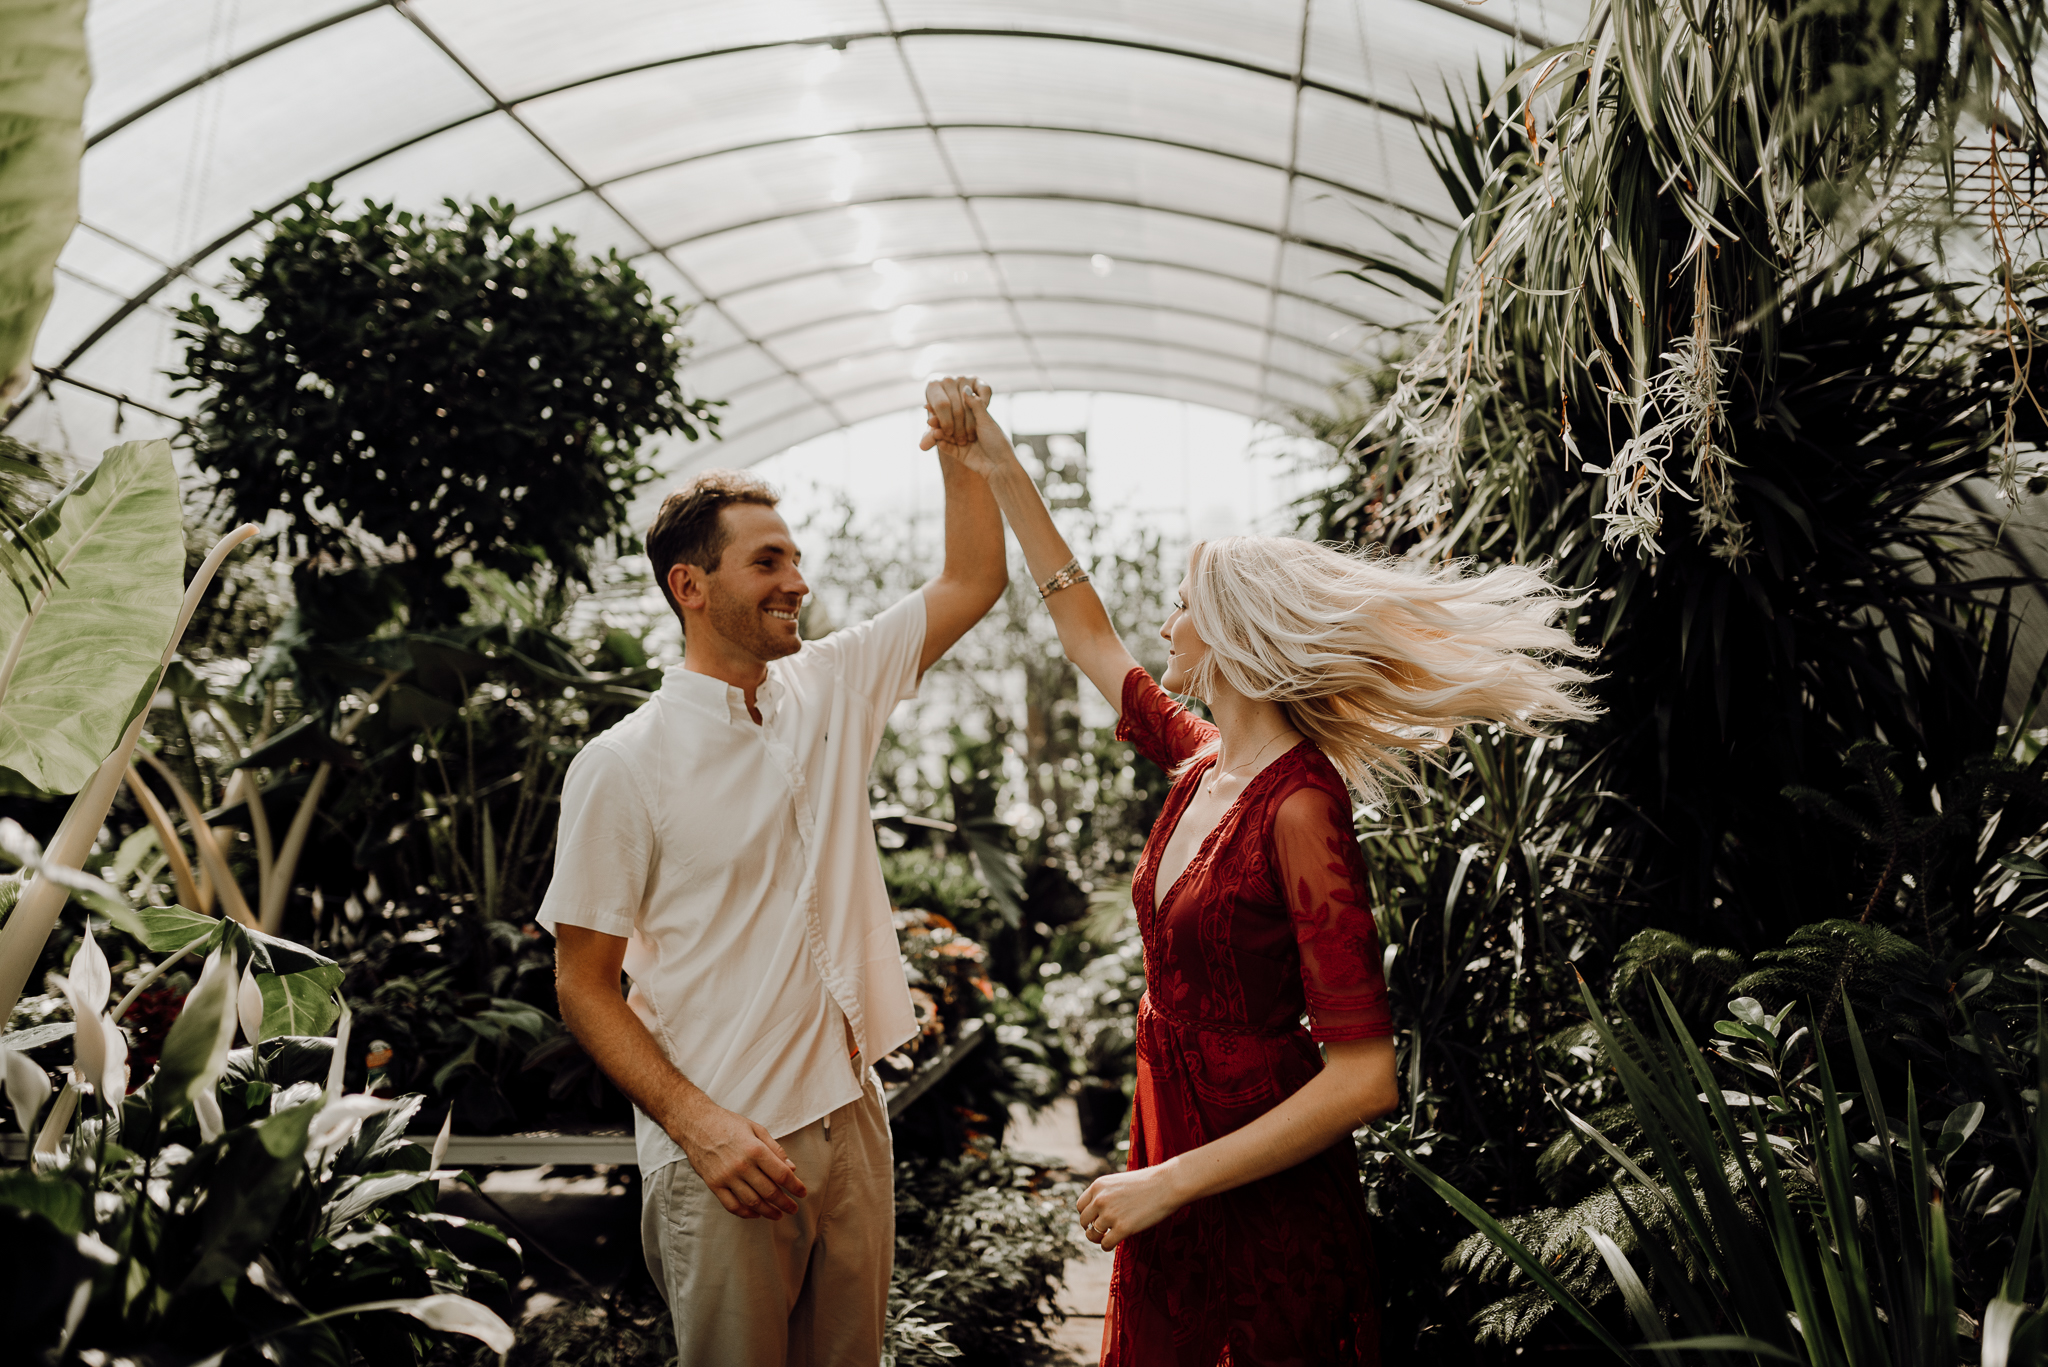 kristen giles photography | texas wedding photographer - austin plant shop engagement session-24-blog.jpg